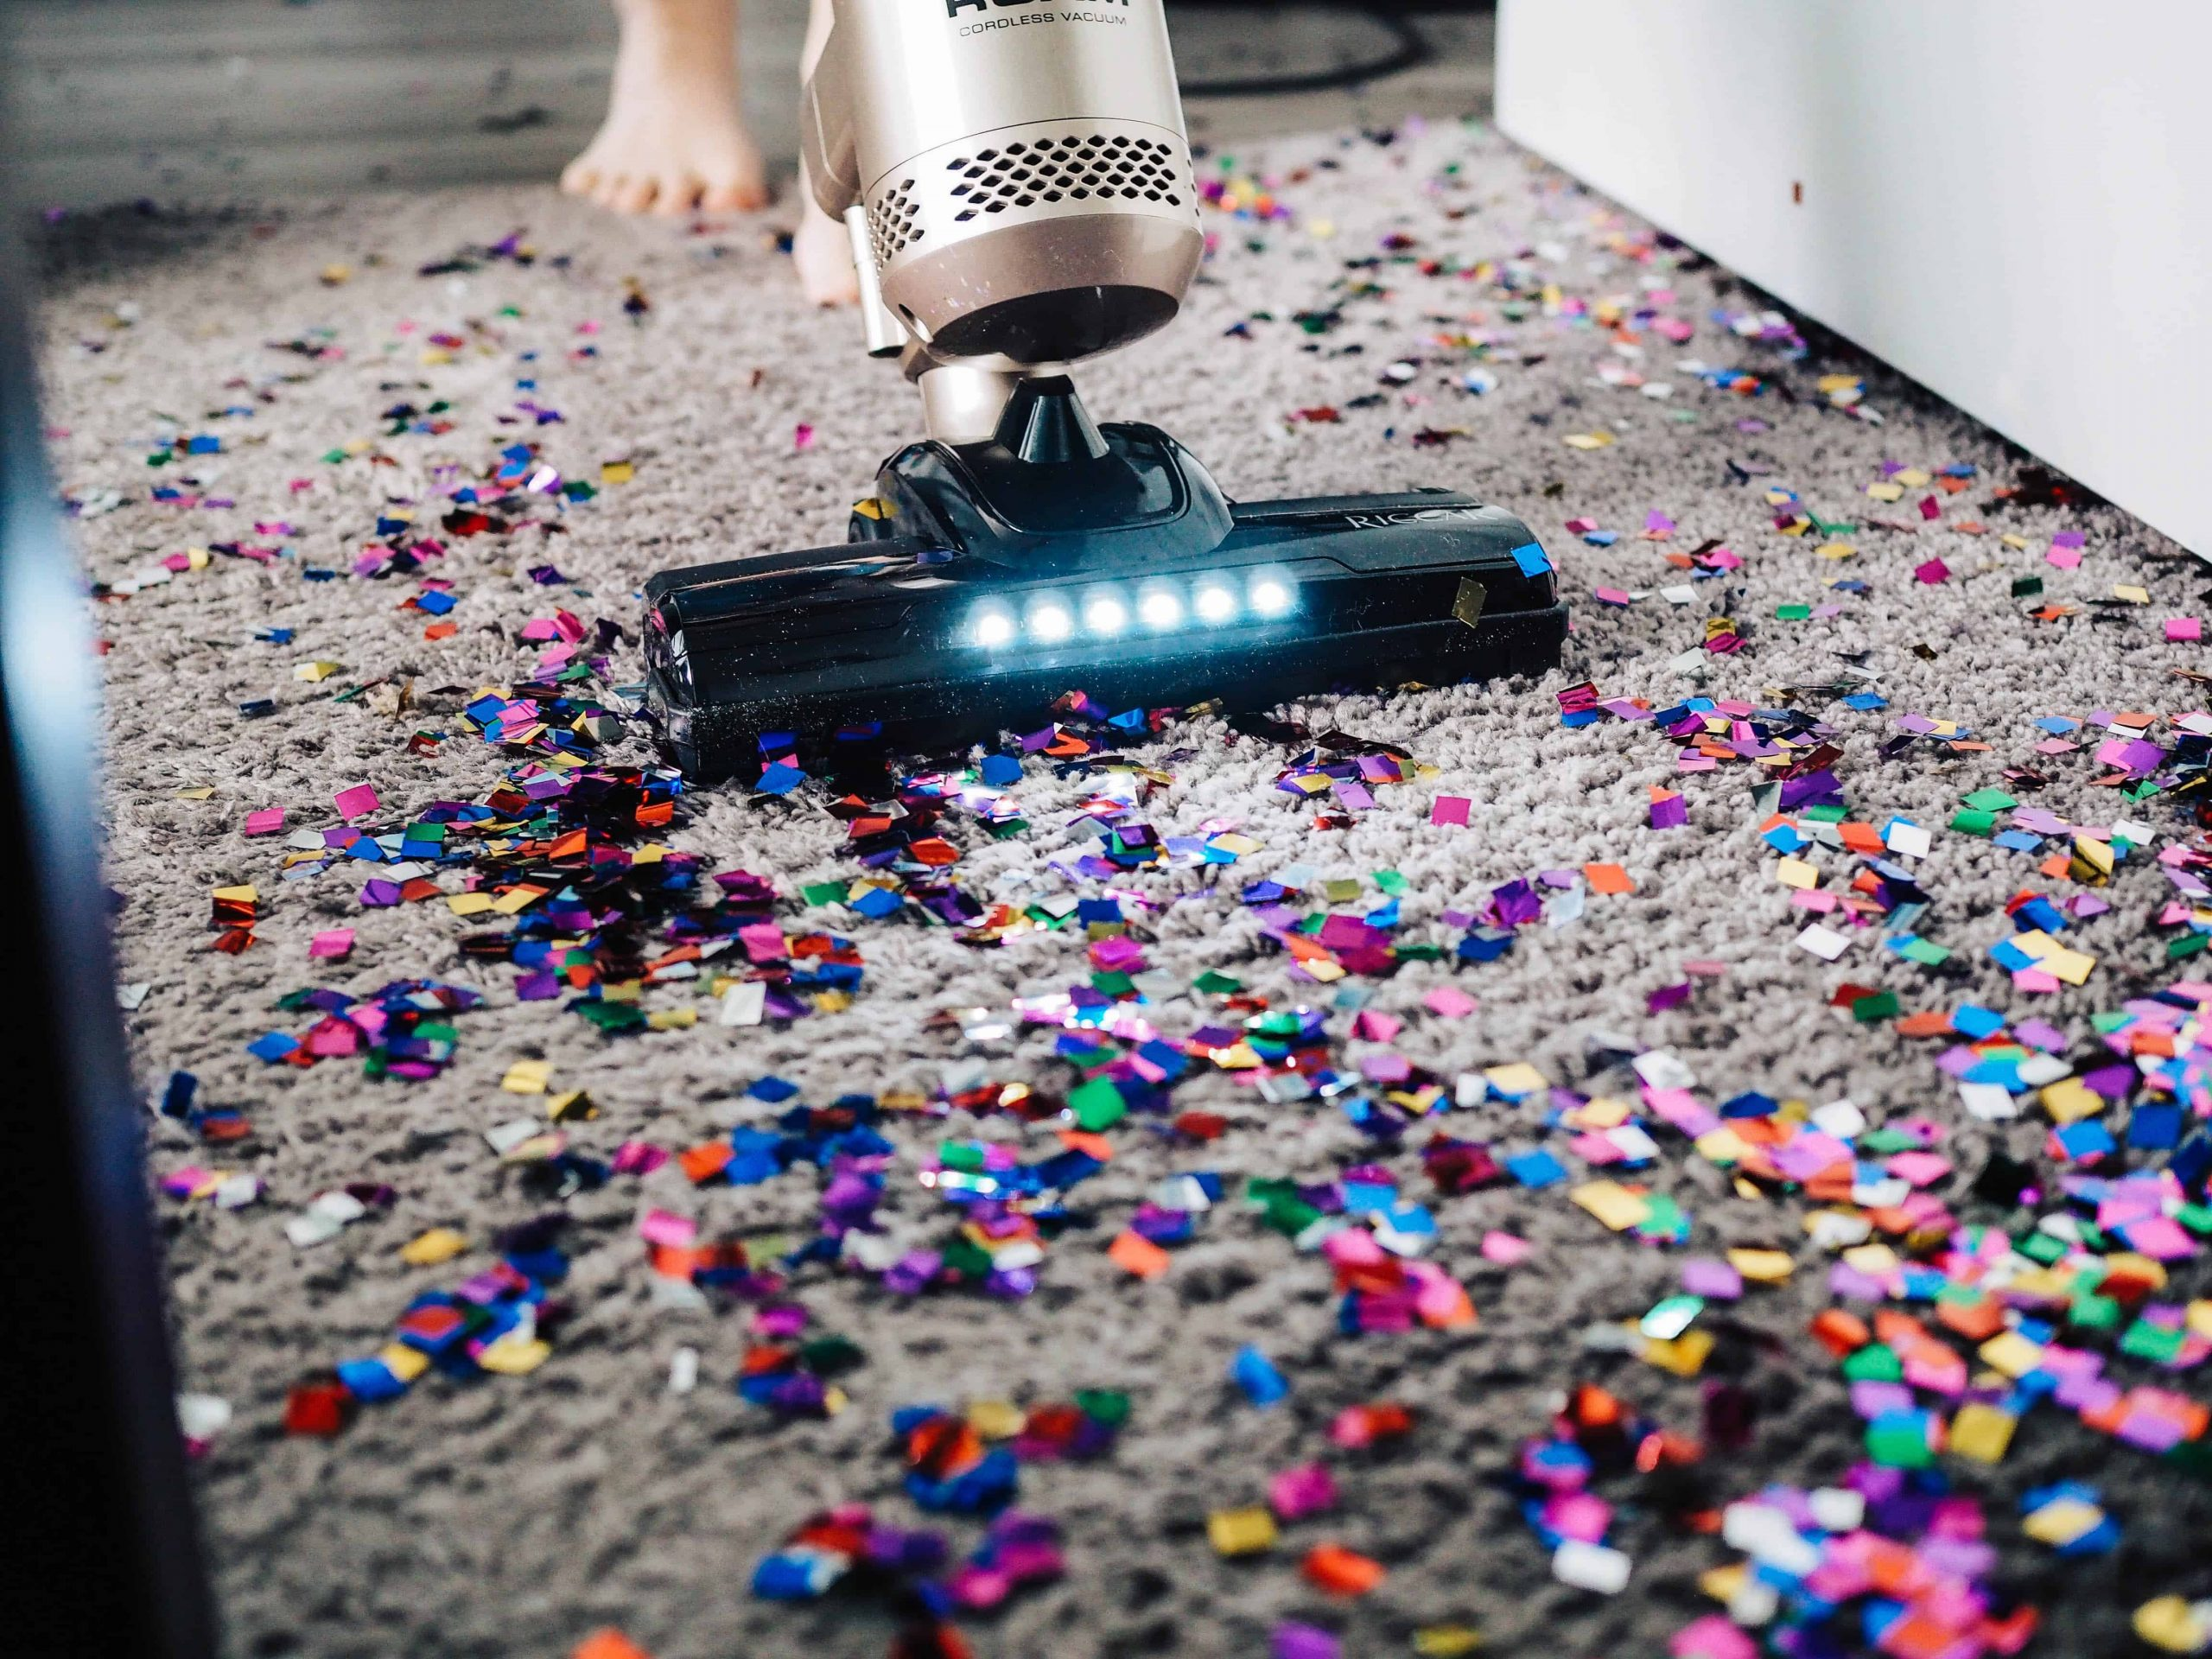 The Best Battery Vacuum Cleaner: Shopping Guide and Recommendations (09/21)